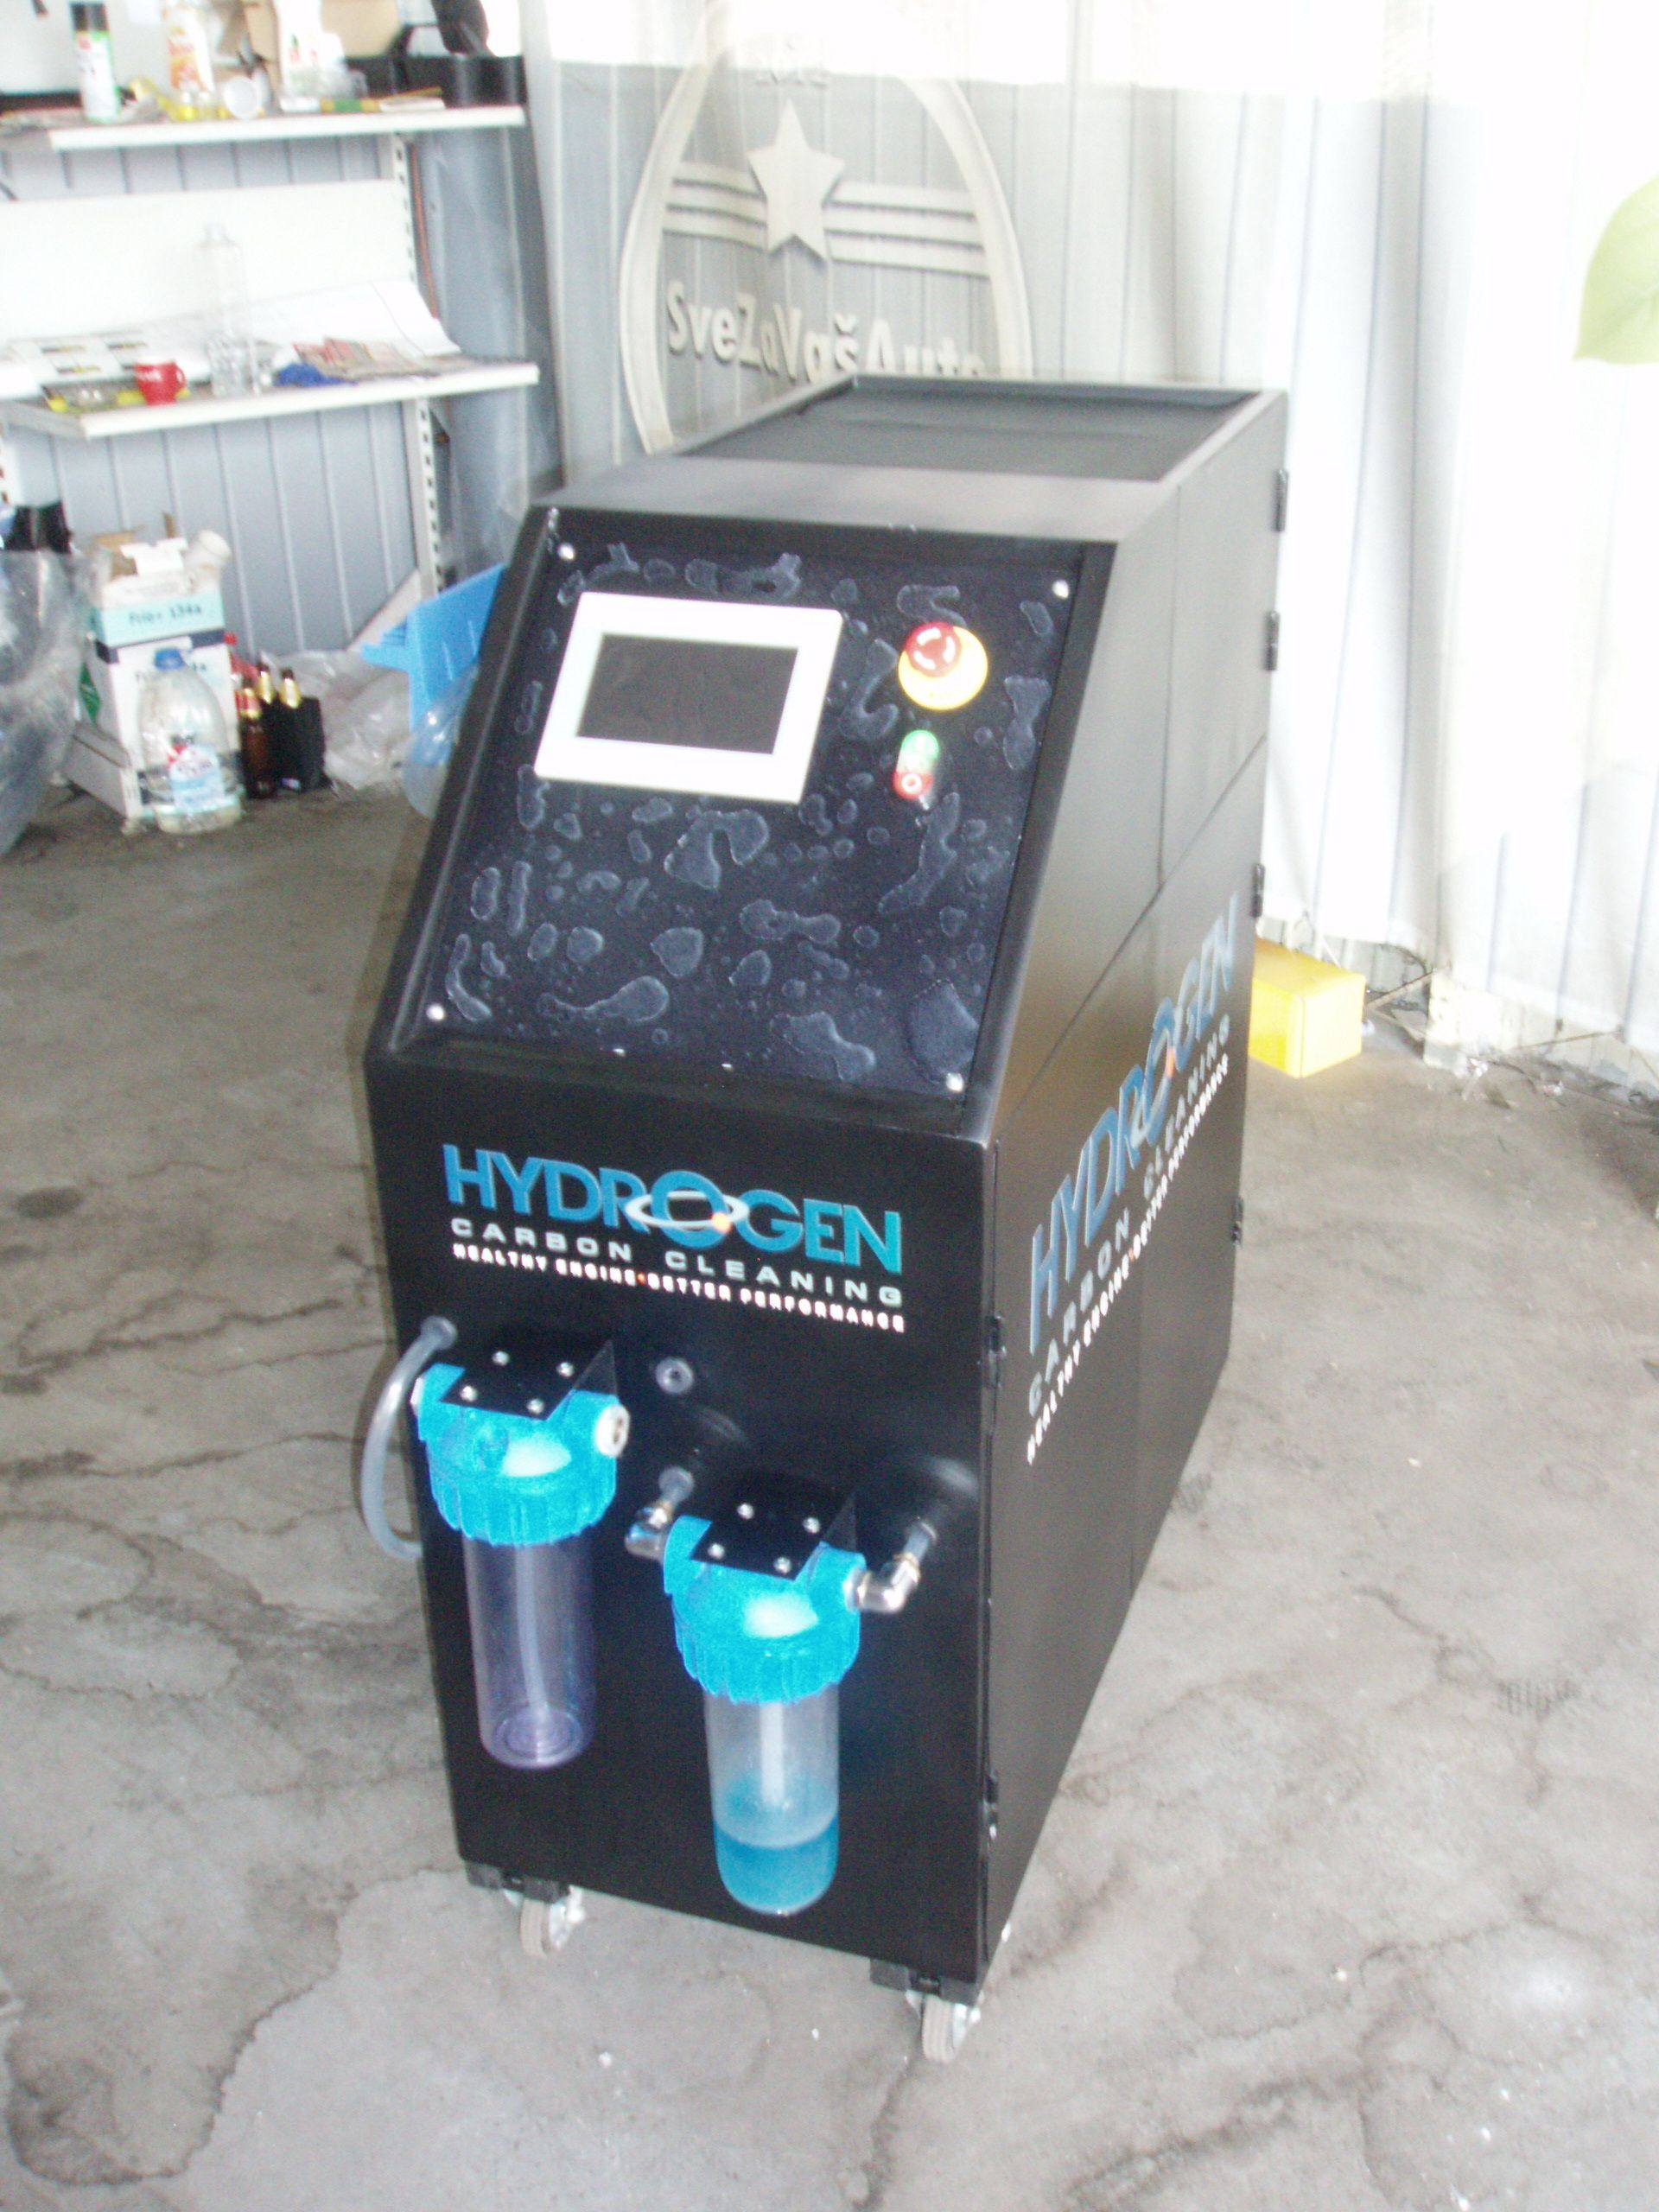 """SERVICE """"CARBON CLEANING"""" HYDROGEN SOLUTIONS hho"""